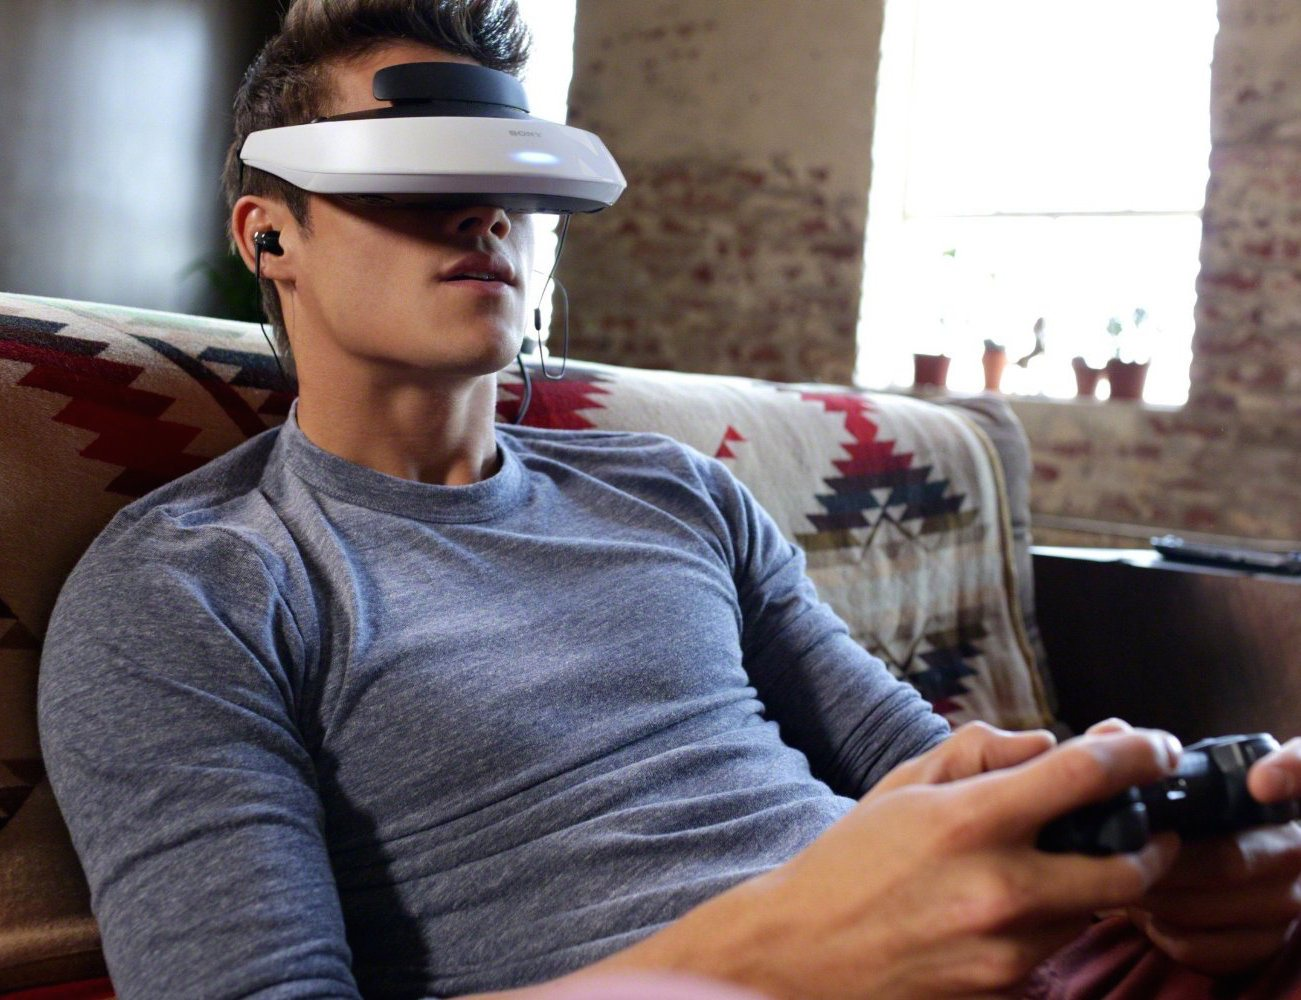 Personal+3D+Viewer+%26%238211%3B+Head+Mounted+Display+By+Sony